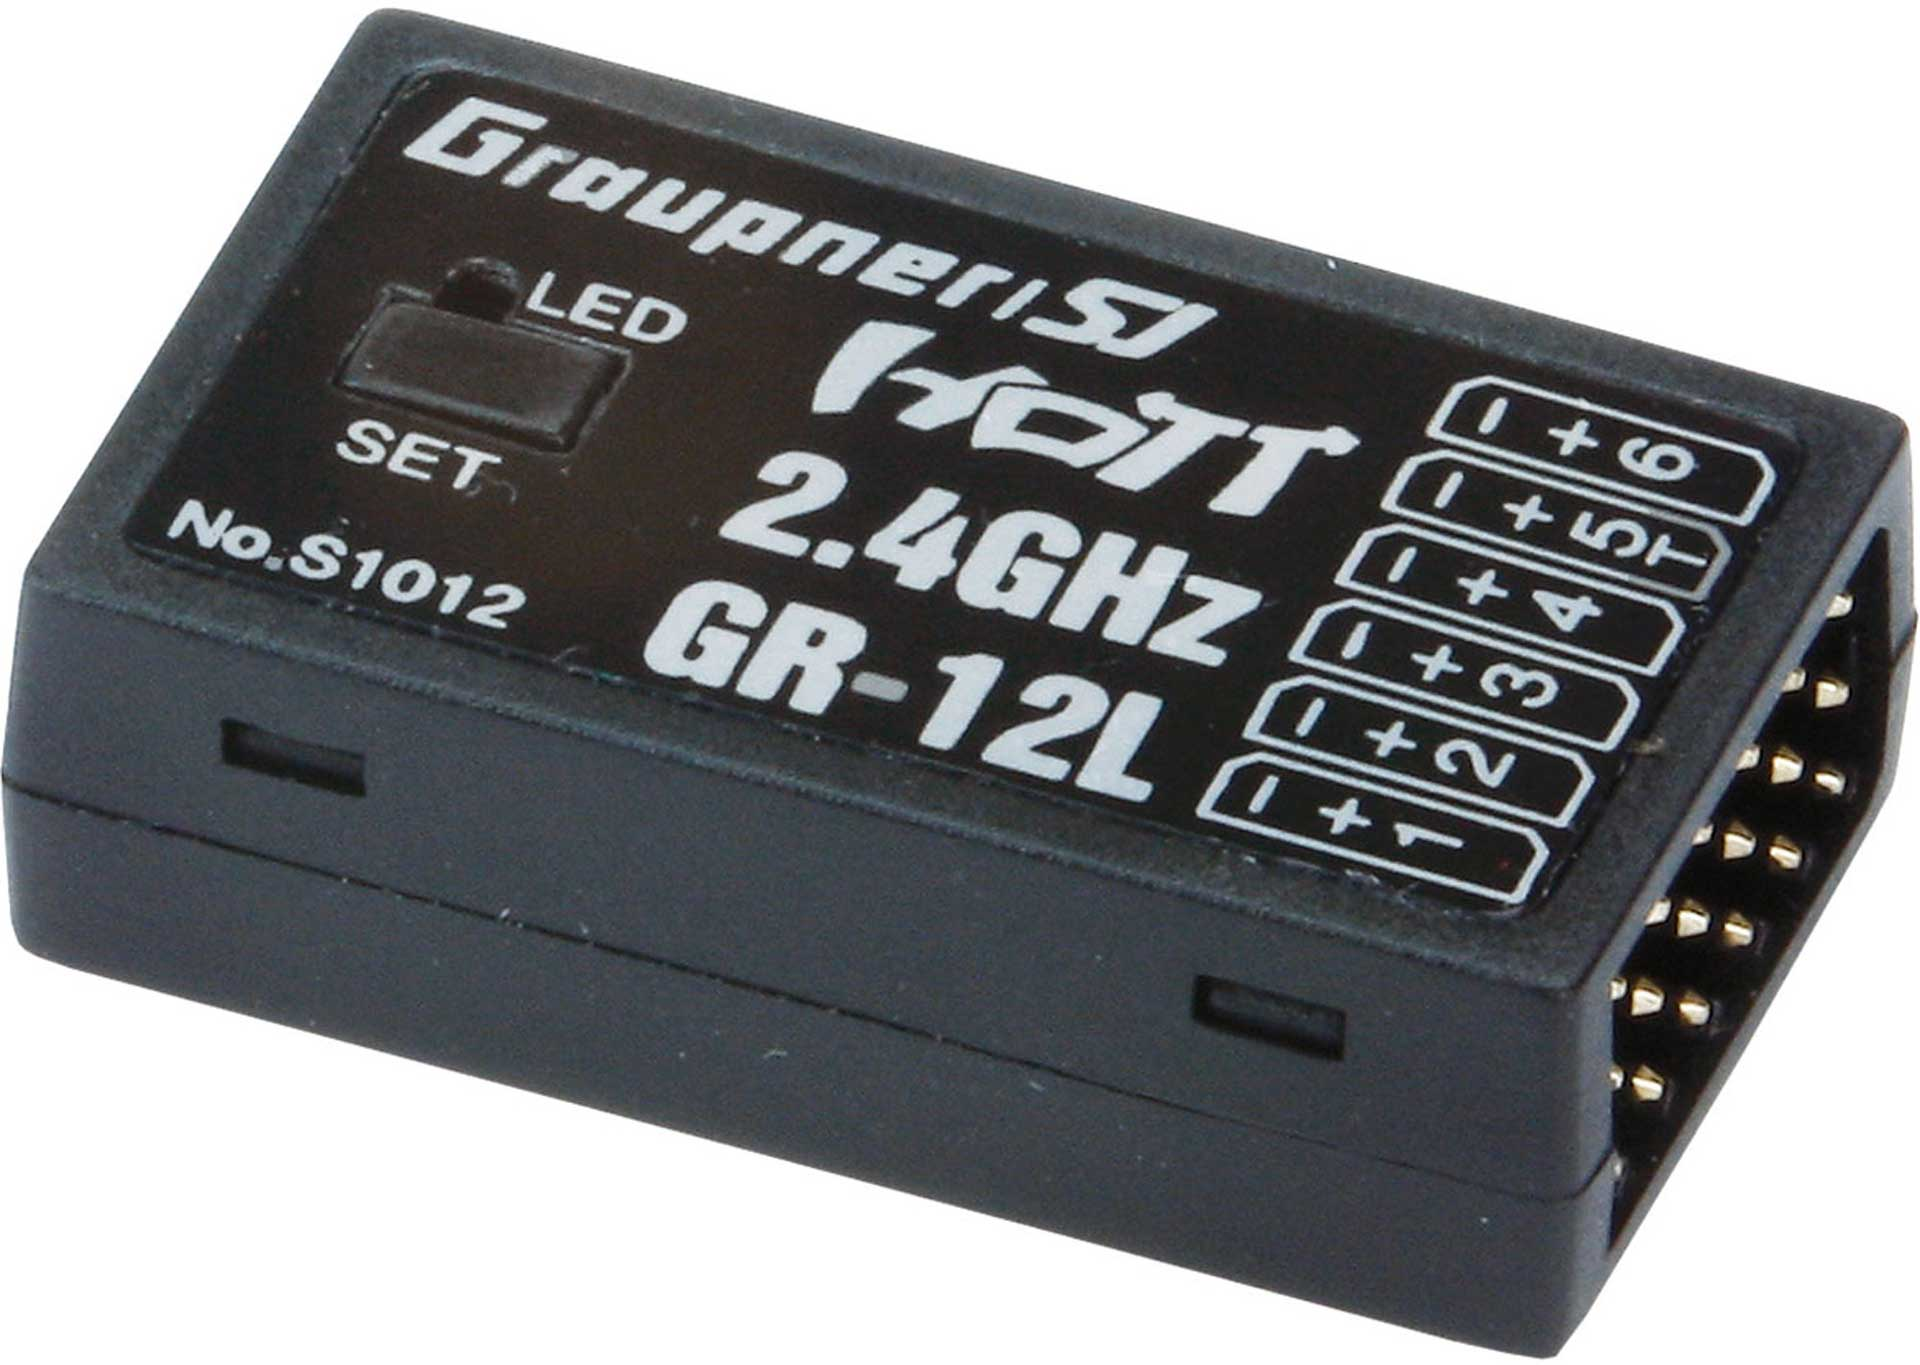 GRAUPNER GR-12L 2.4GHZ HOT 6K RECEIVER WITHOUT CHANNEL MAPPING, SERVO REVERSE....